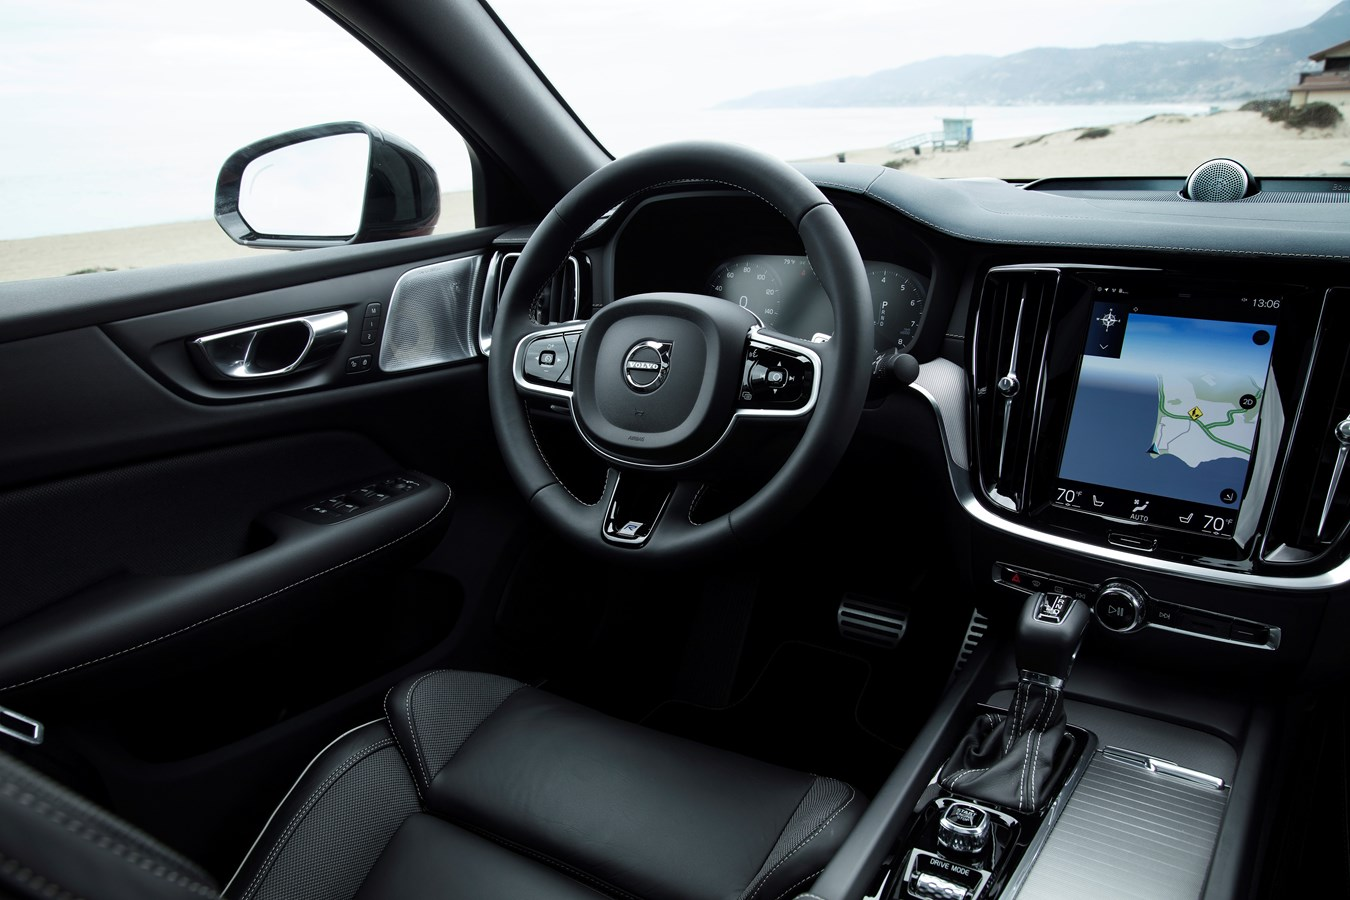 Volvo S60 R-Design interior